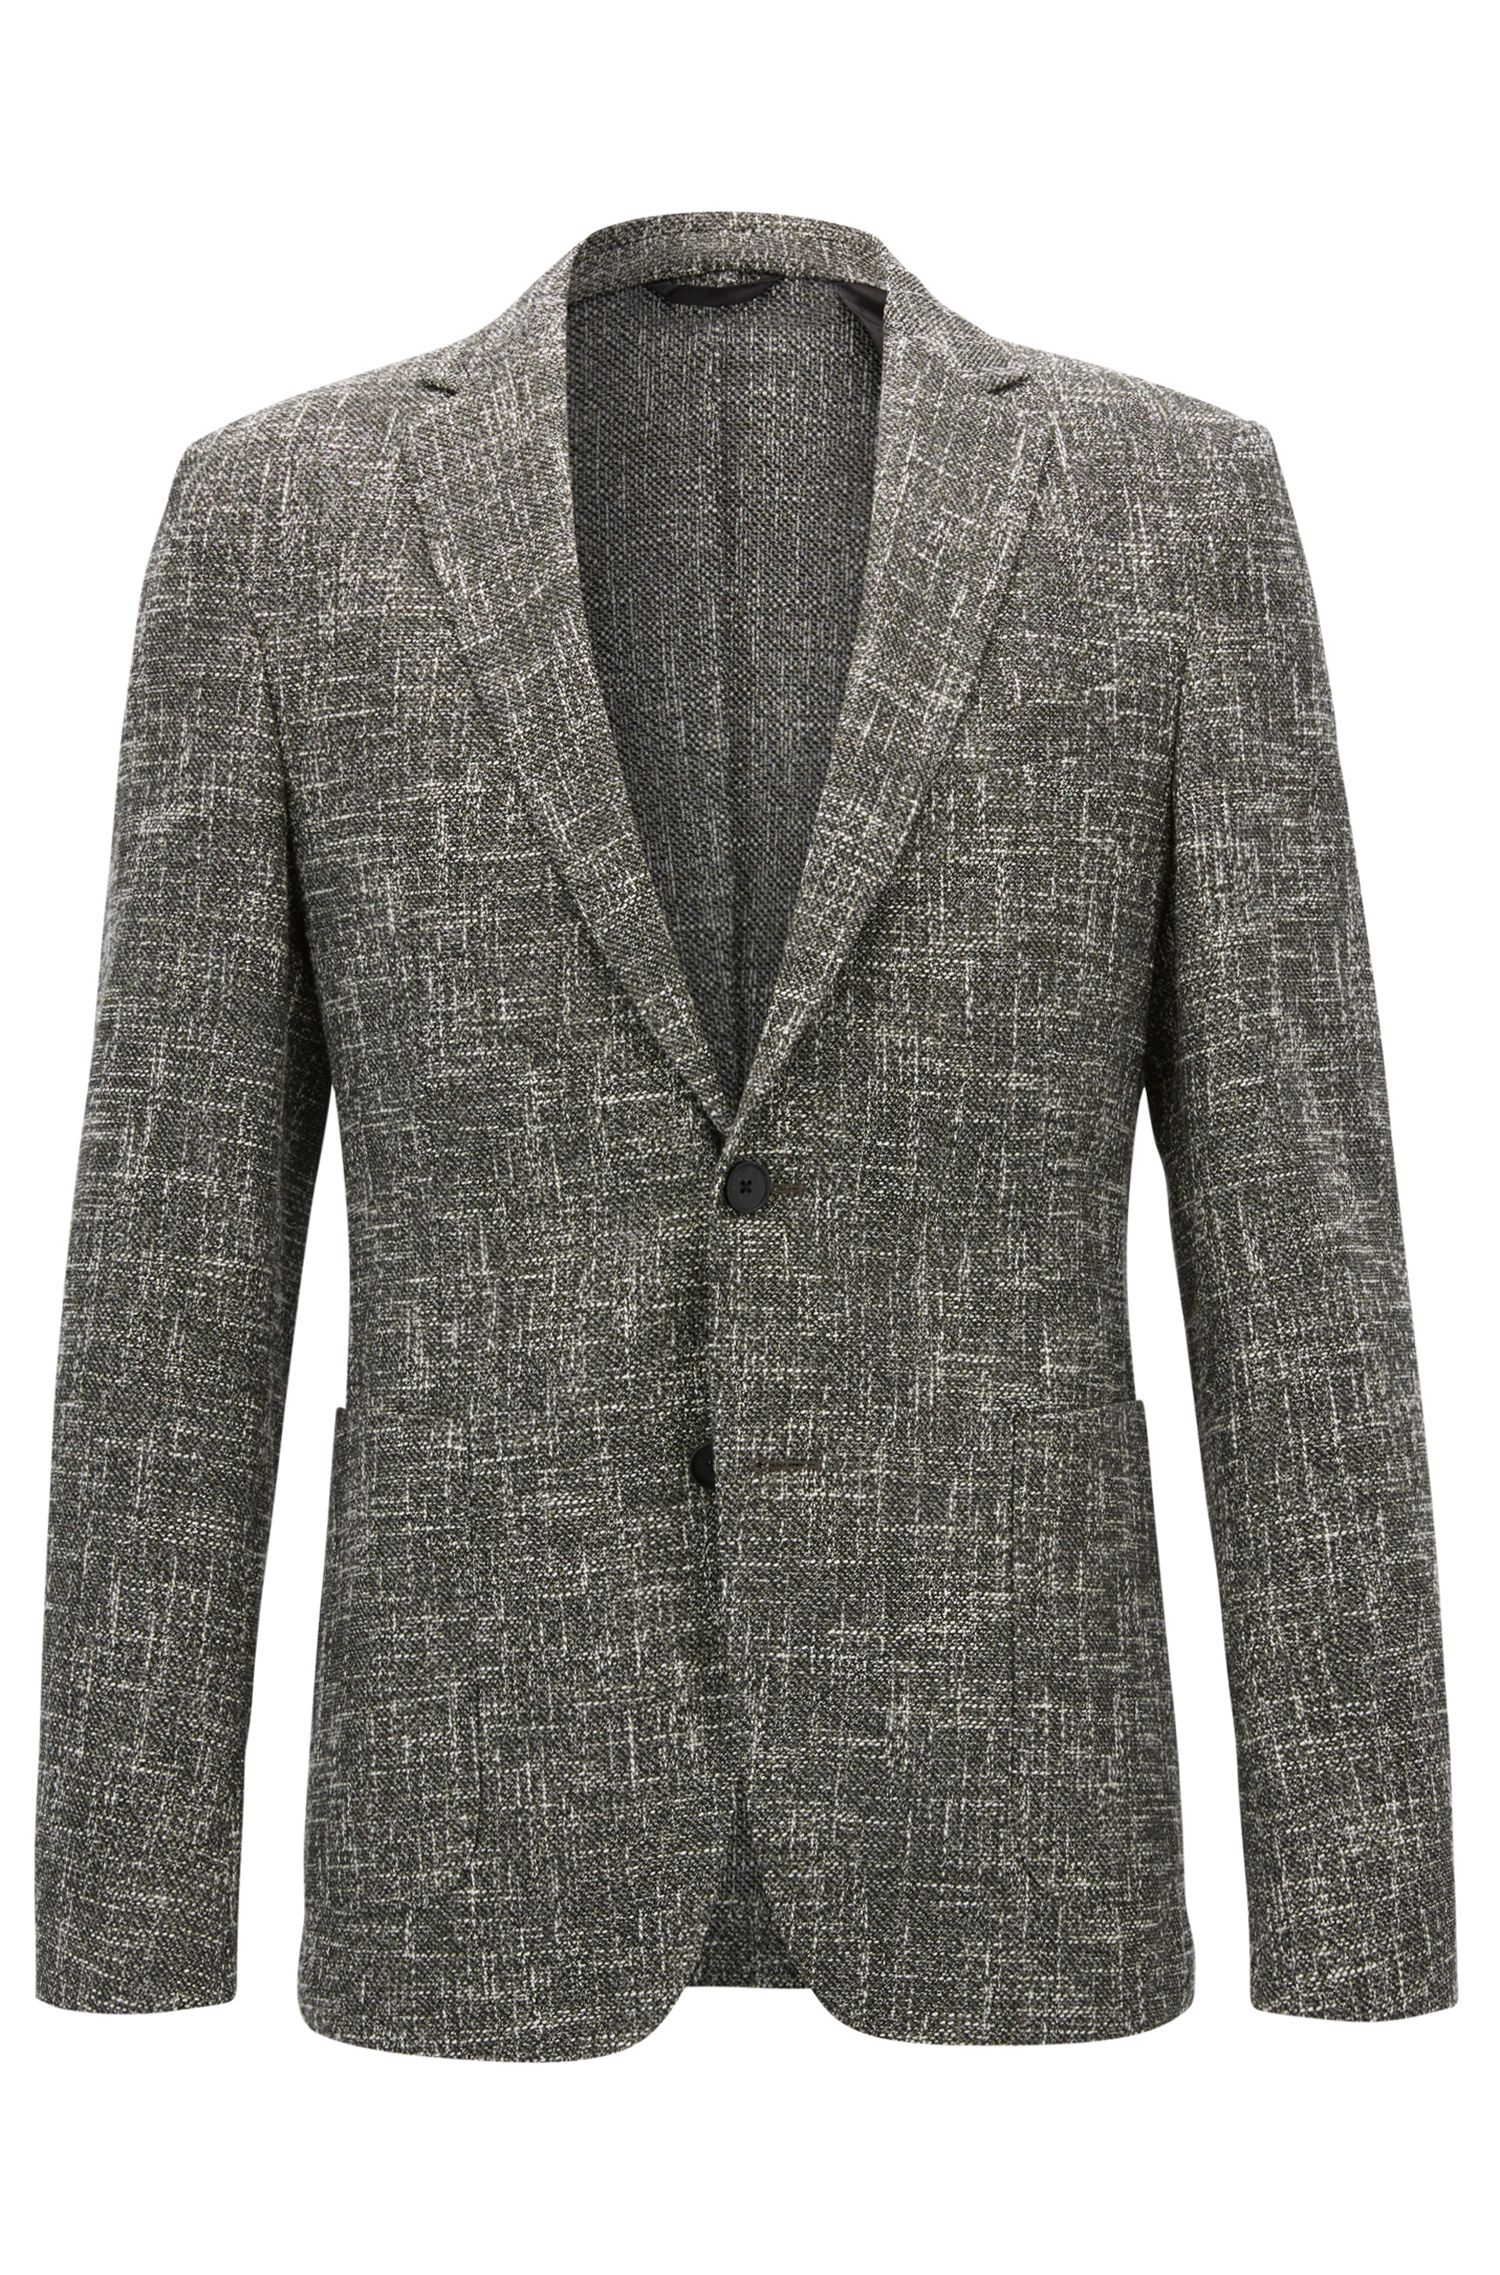 Slim-fit jacket in a melange cotton blend